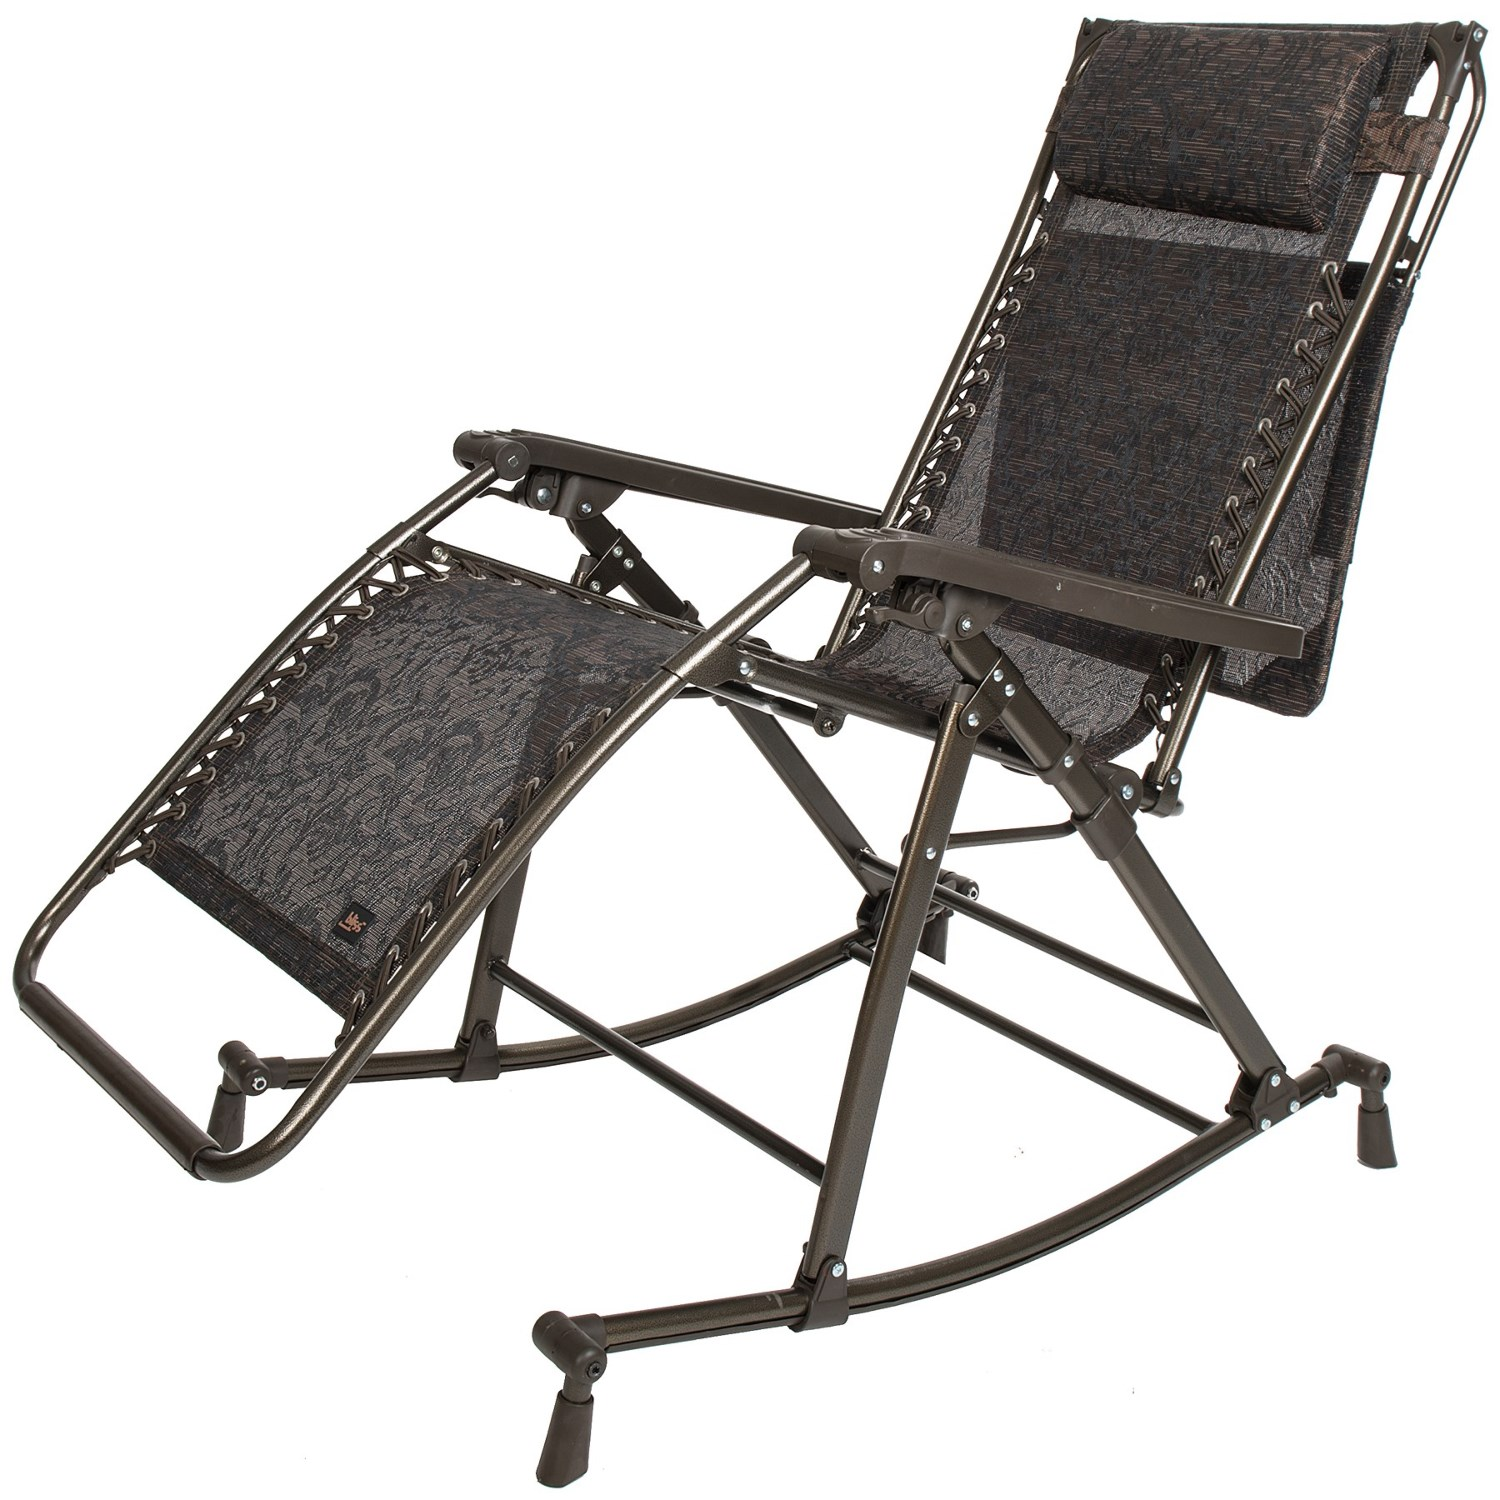 bliss zero gravity chair bliss hammocks zero gravity patio lounge chair rocker bliss zero gravity chair   28 images   bliss hammocks gravity free      rh   screensinthewild org